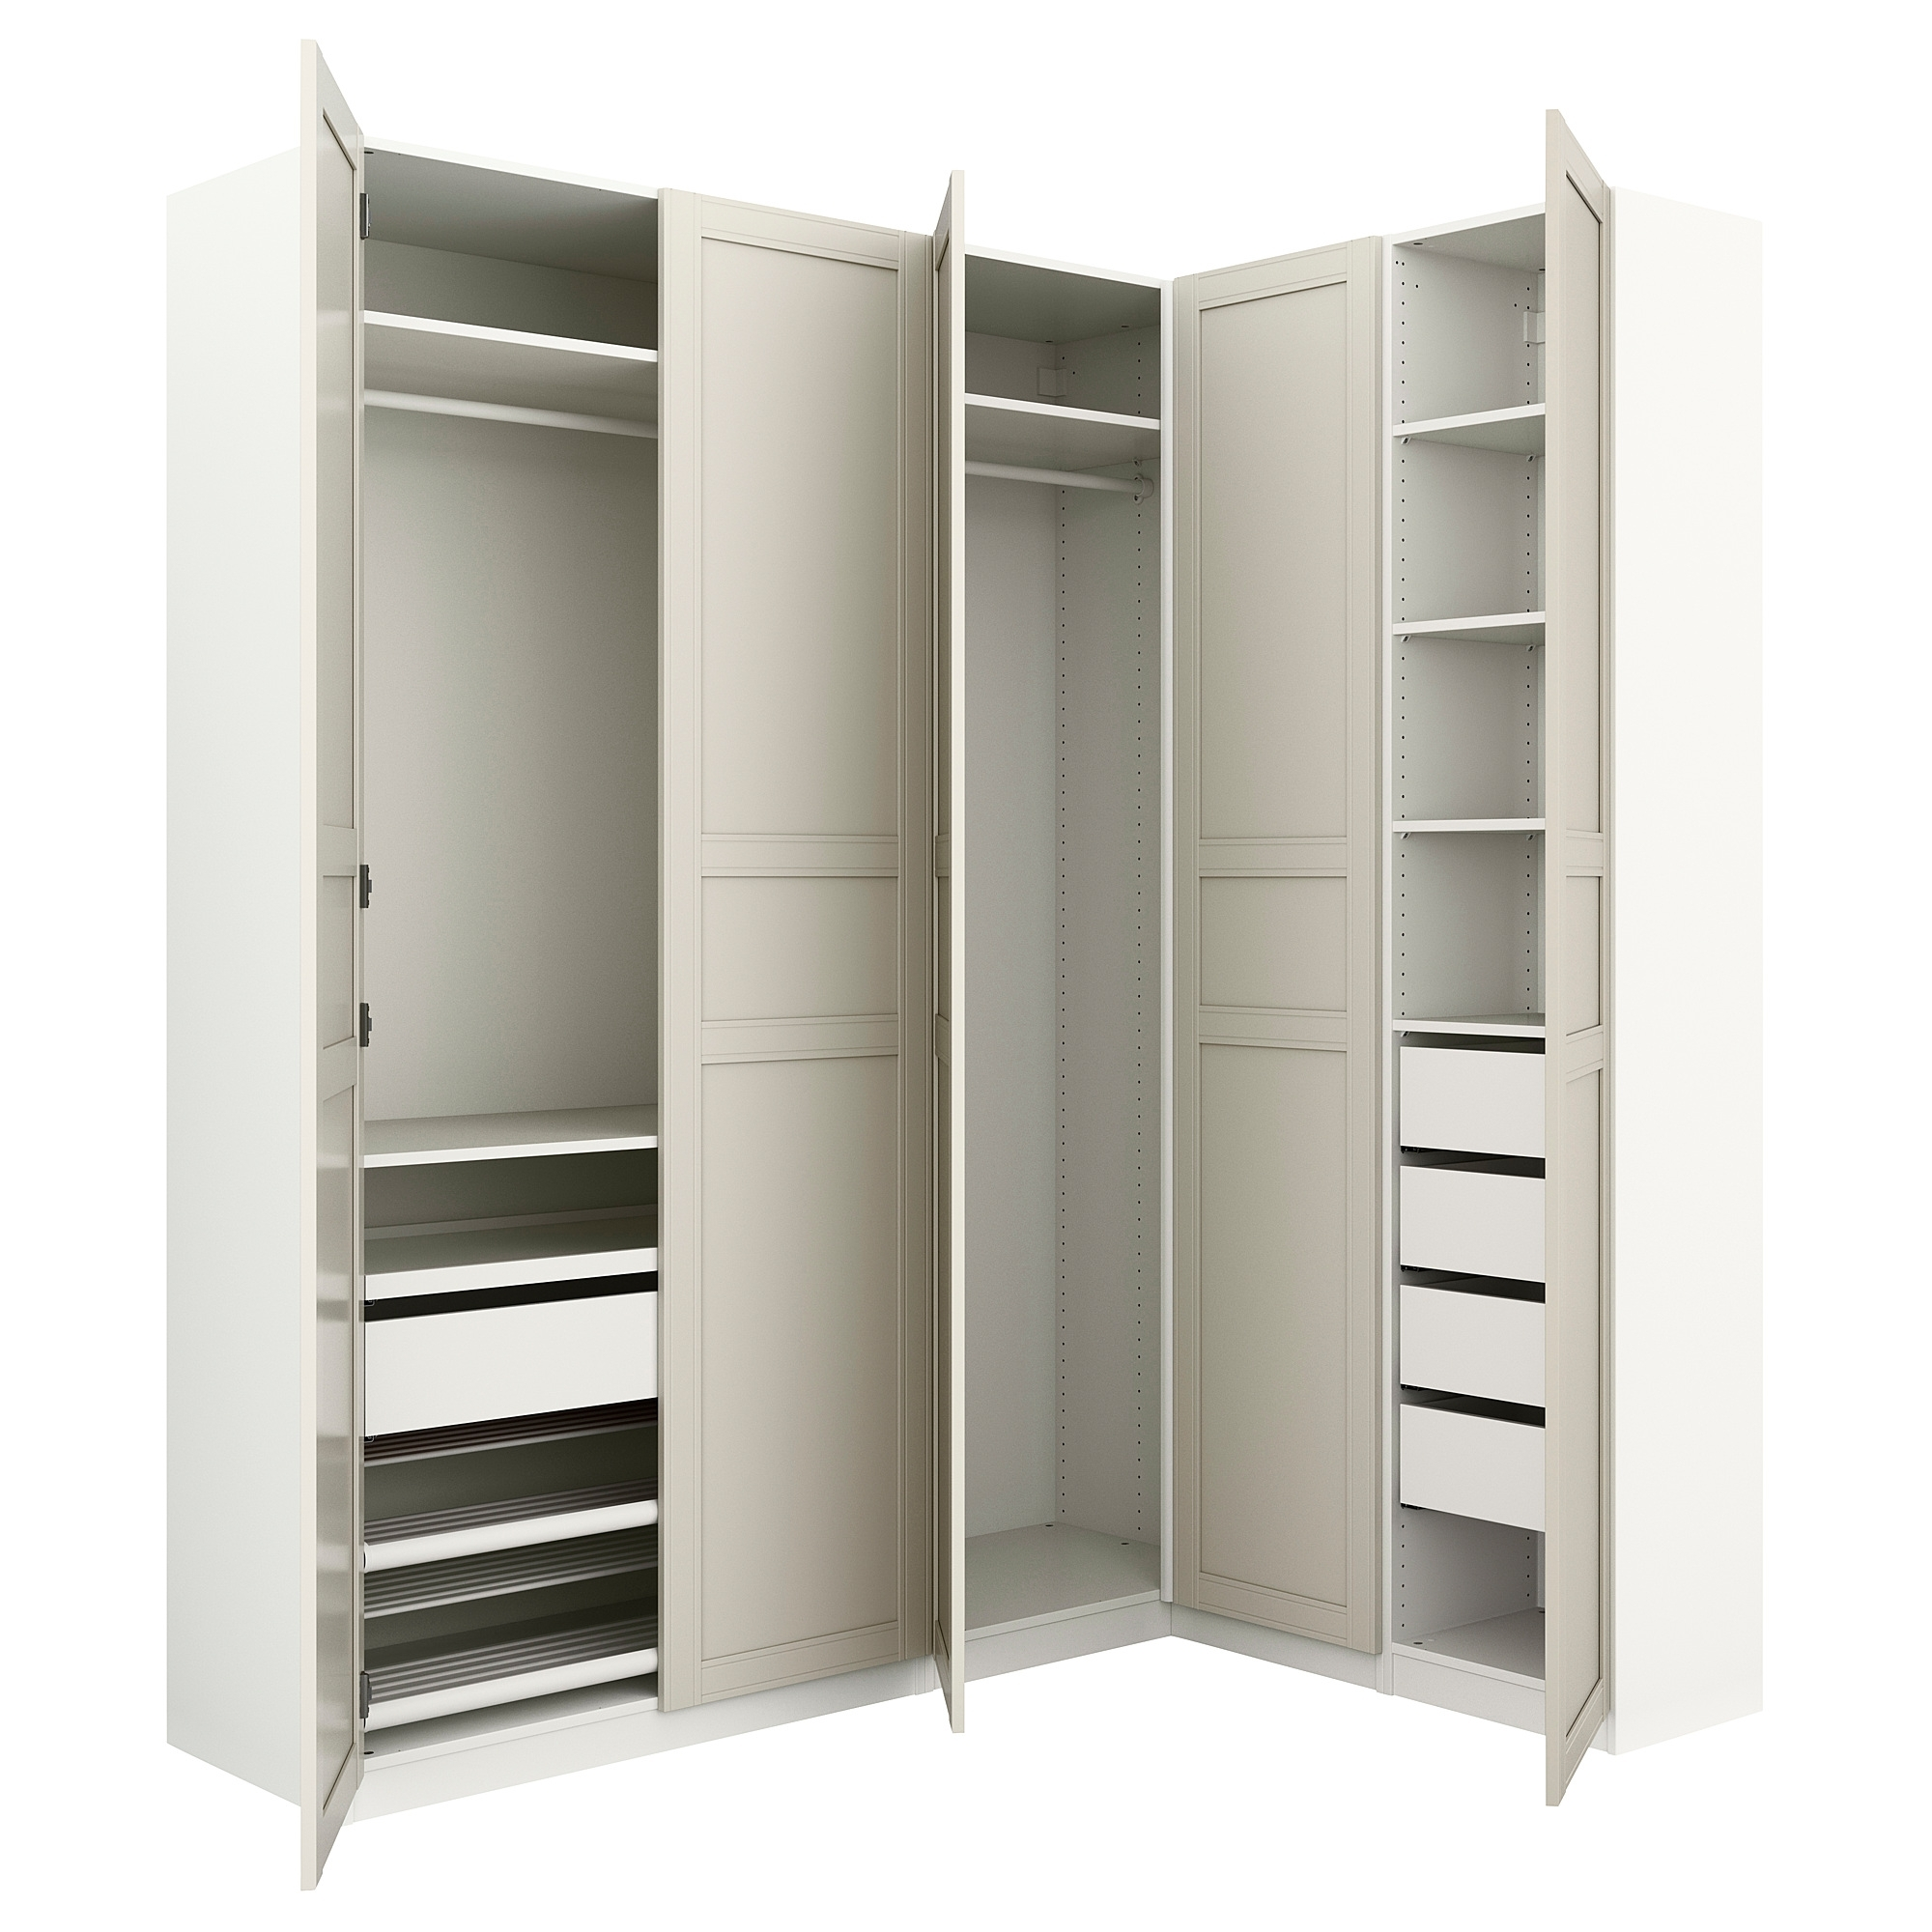 Etonnant Widely Used Corner Wardrobes Closet Ikea Pertaining To Pax Corner Wardrobe  U2013 Ikea (View 15